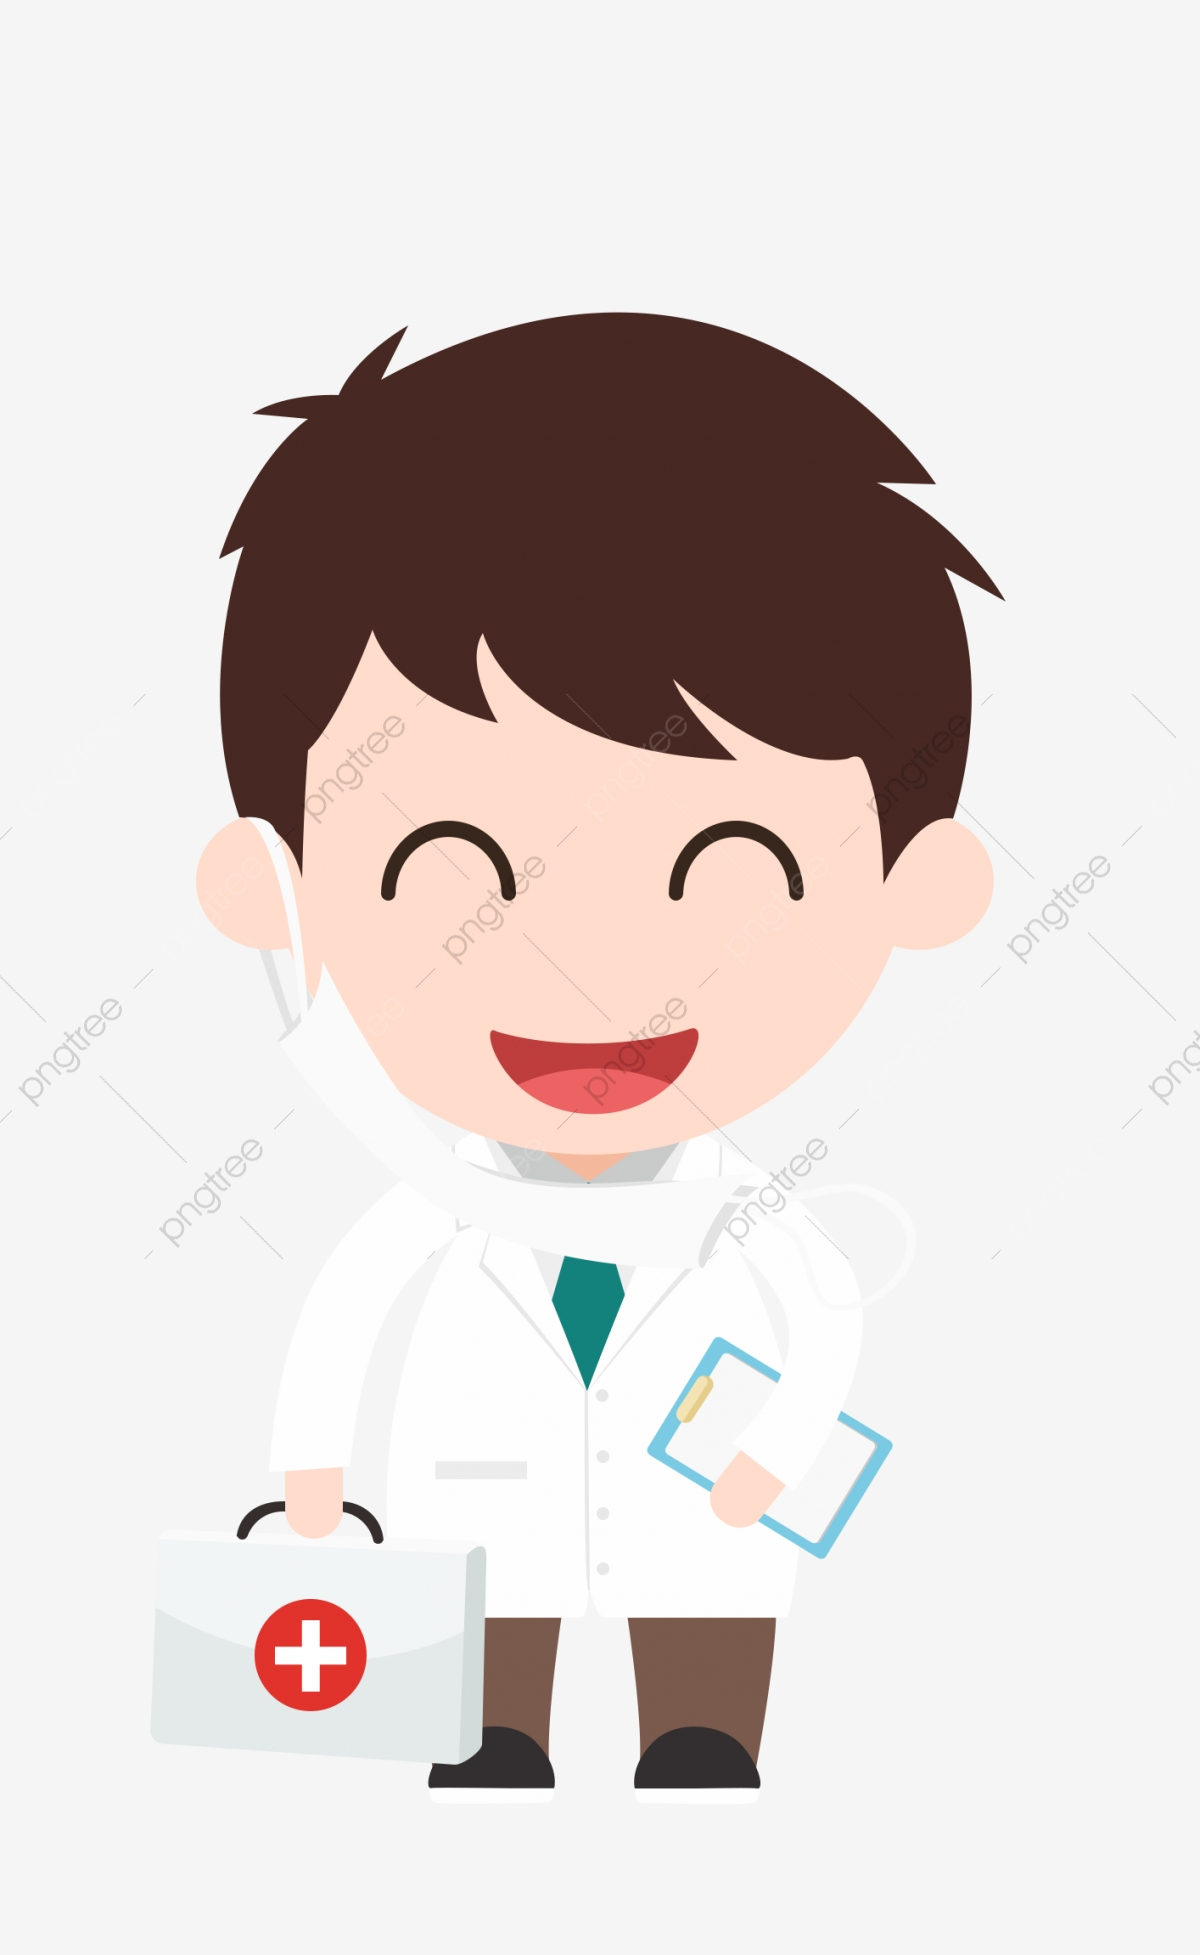 Medical Cartoon Doctor Cute Smiley Face Wear Mask, White Coat ... picture transparent